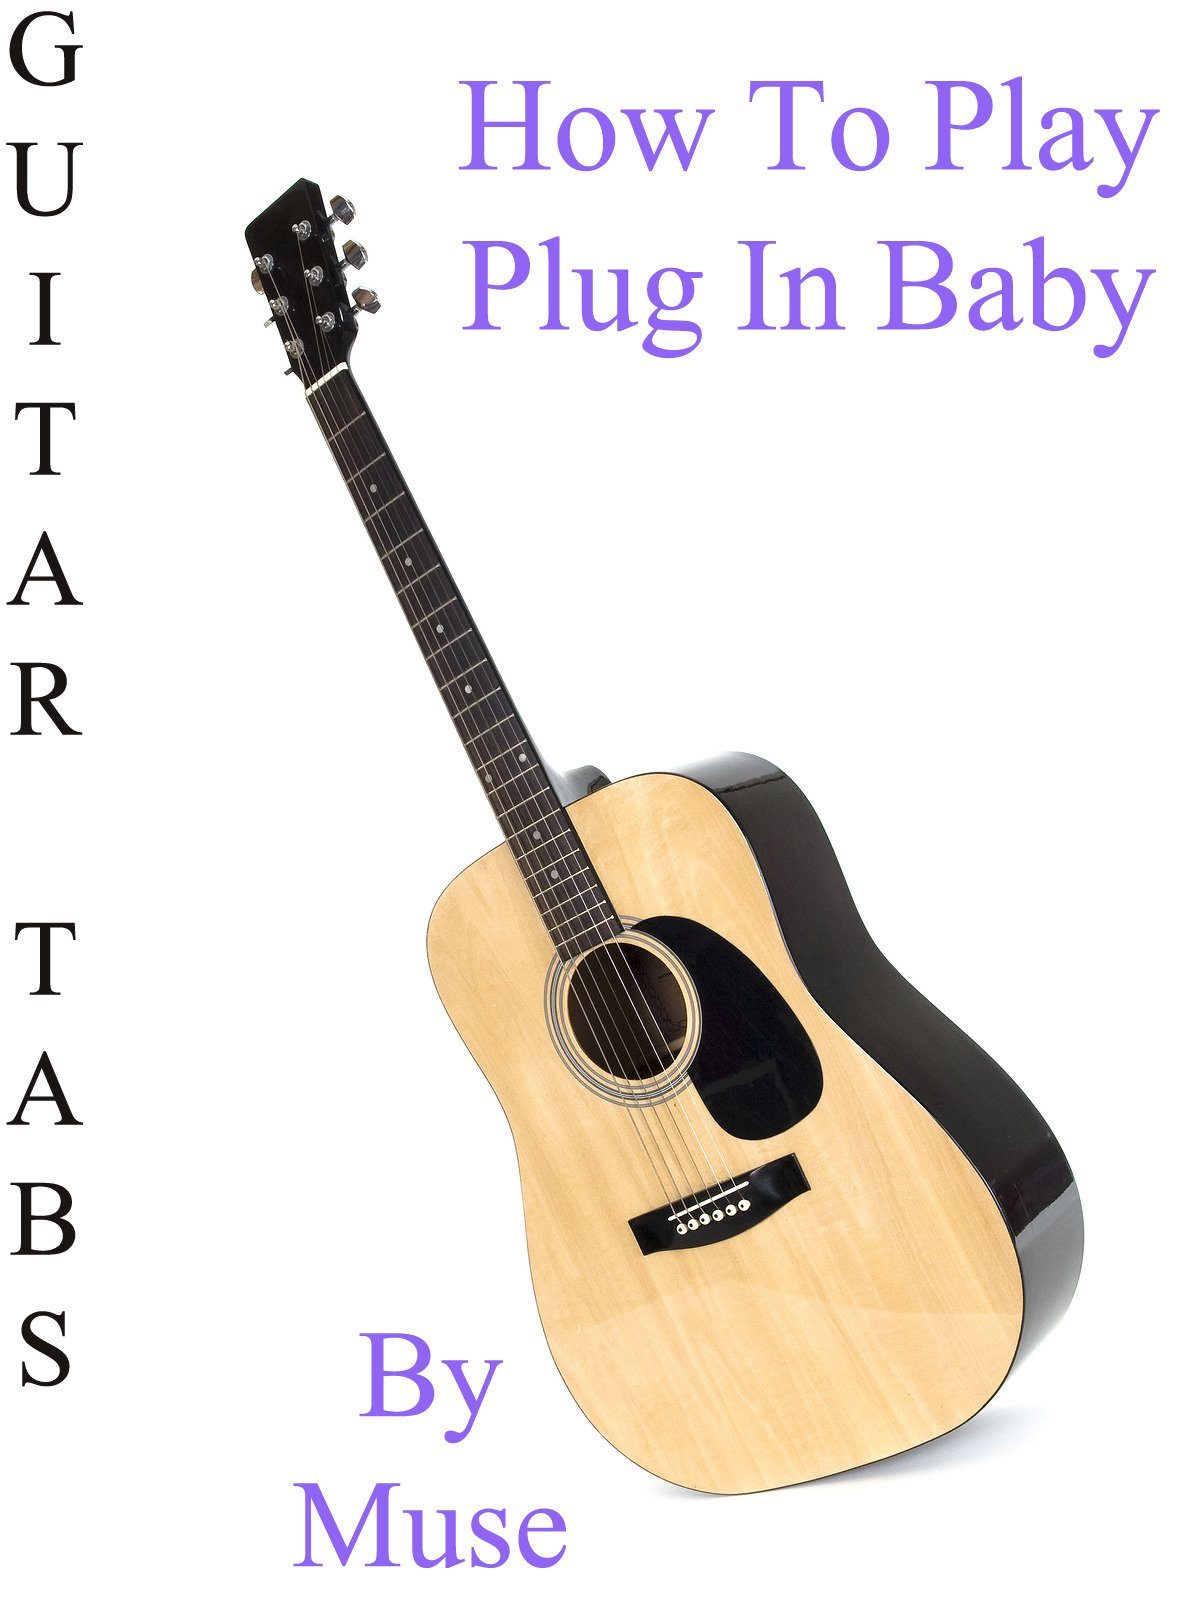 Amazon com: Watch How To Play Plug In Baby By Muse - Guitar Tabs